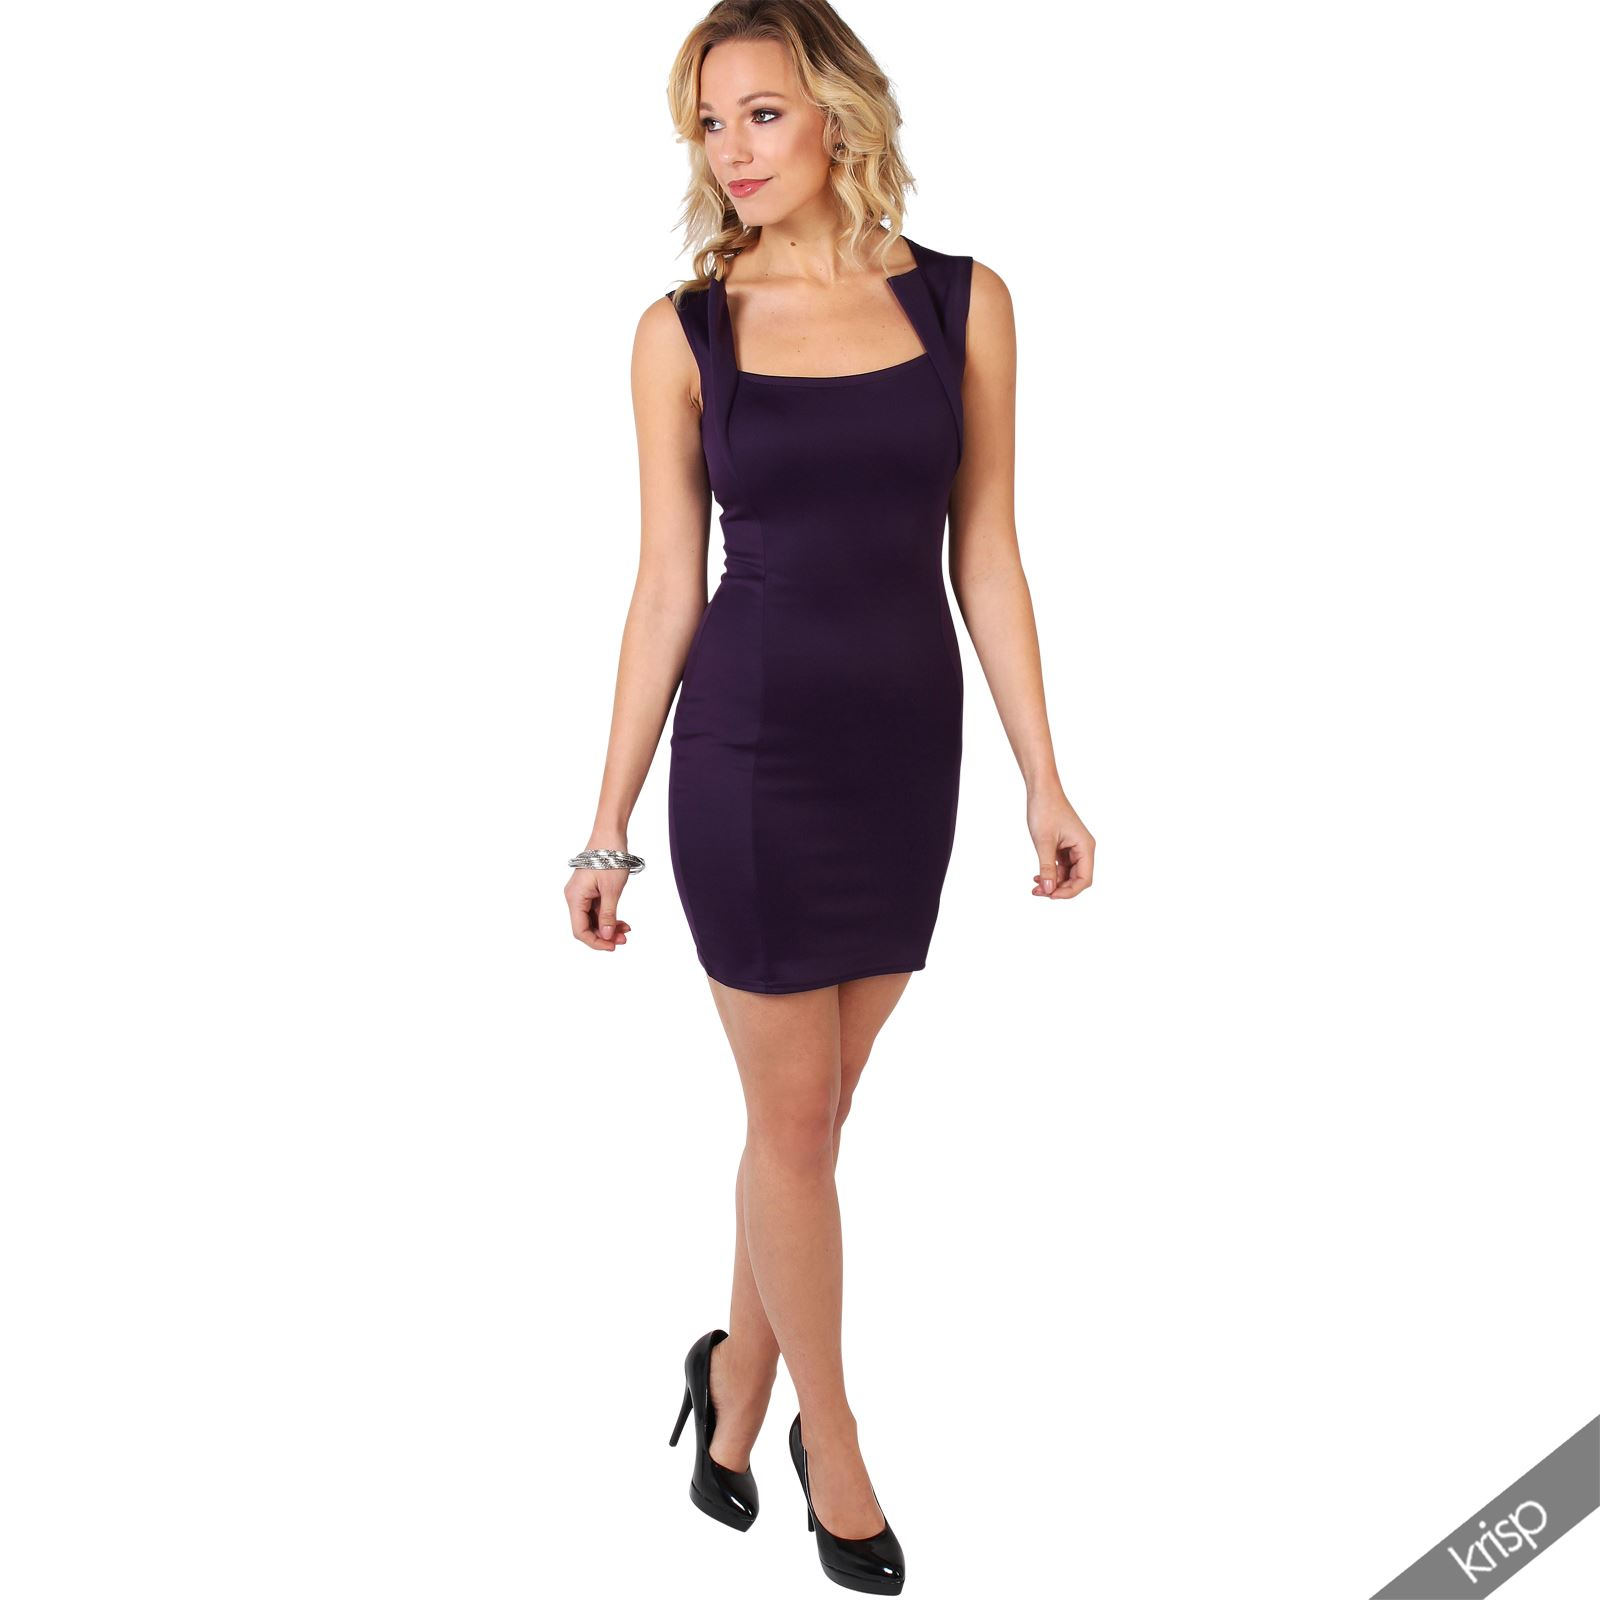 Ladies-Fashion-Bodycon-Dress-Sleeveless-Backless-Party-Fitted-Cocktail-Pencil thumbnail 12